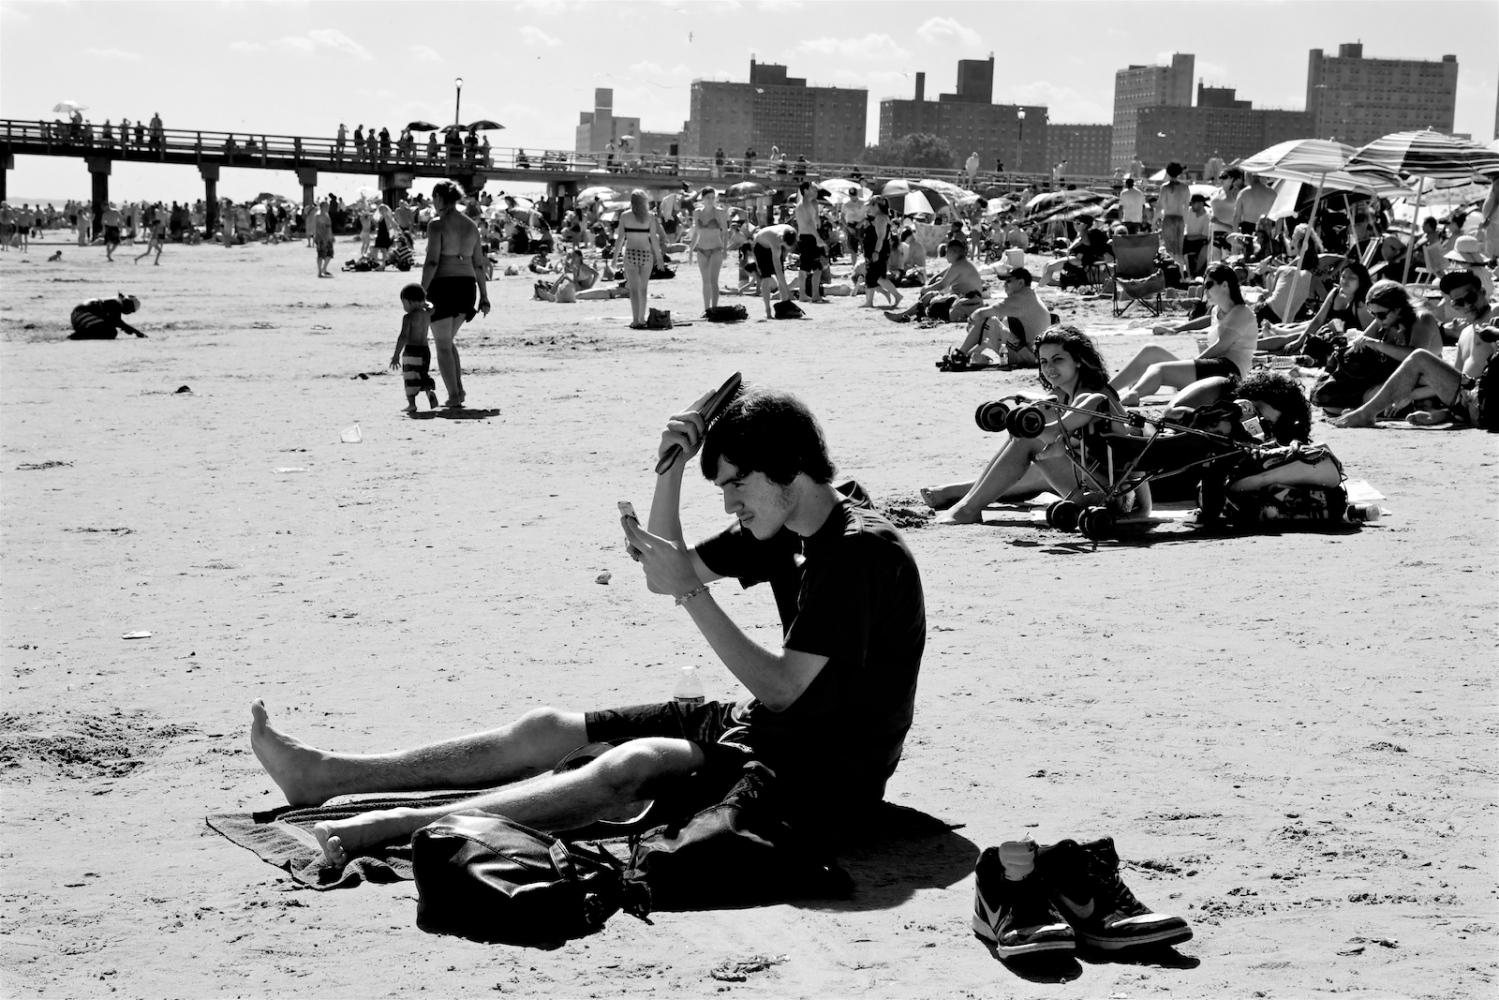 Boy Brushing Hair. Coney Island, NY, Summer 2011